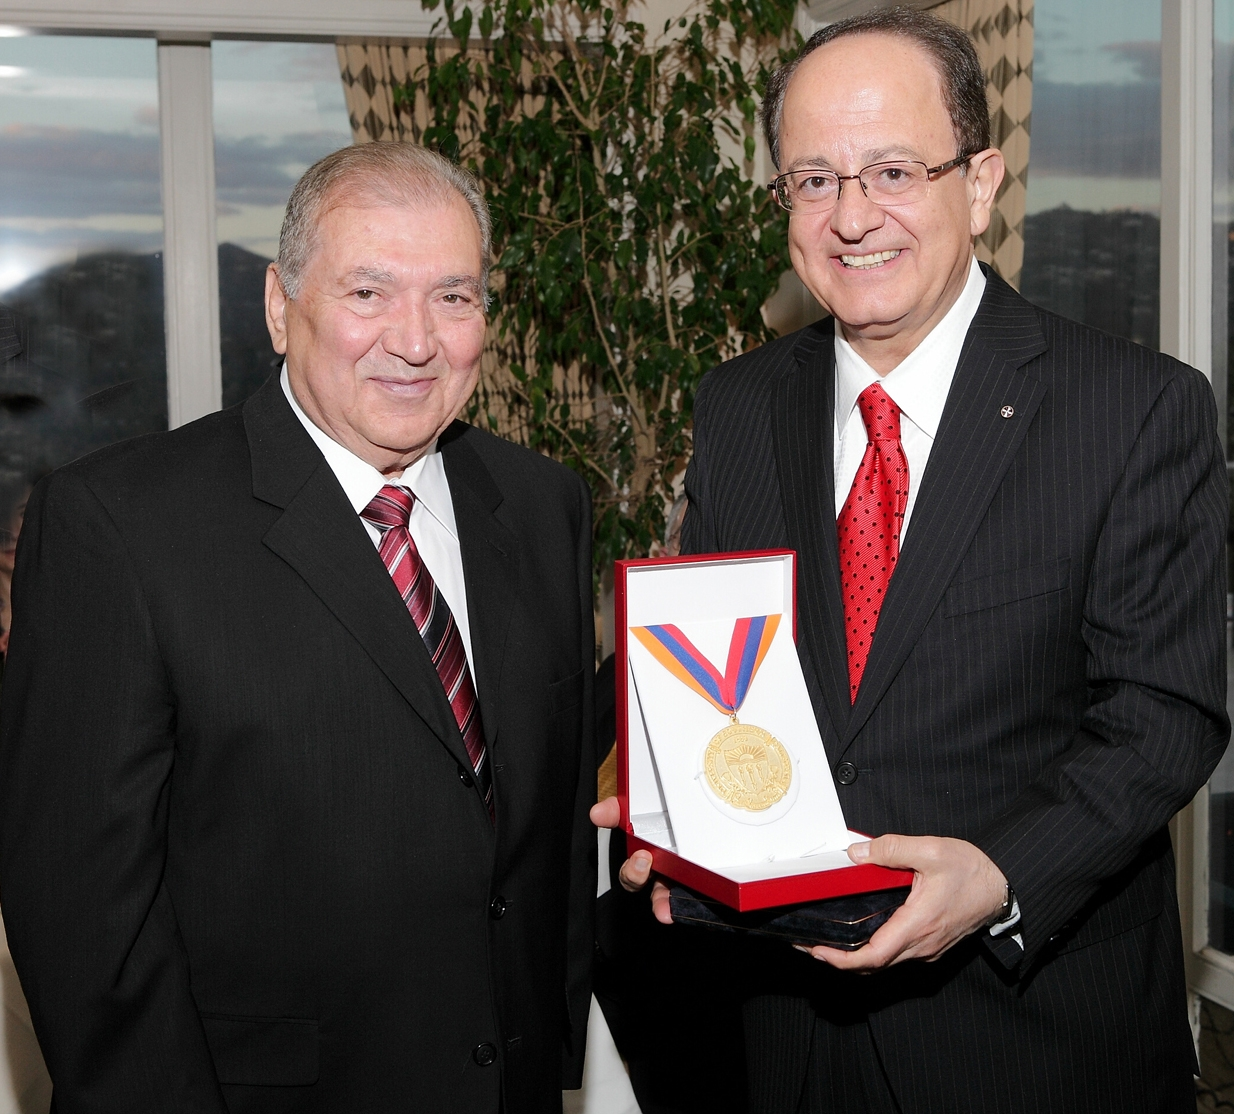 Mr. Jerry Turpanjian and USC President Dr. C.L. Max Nikias